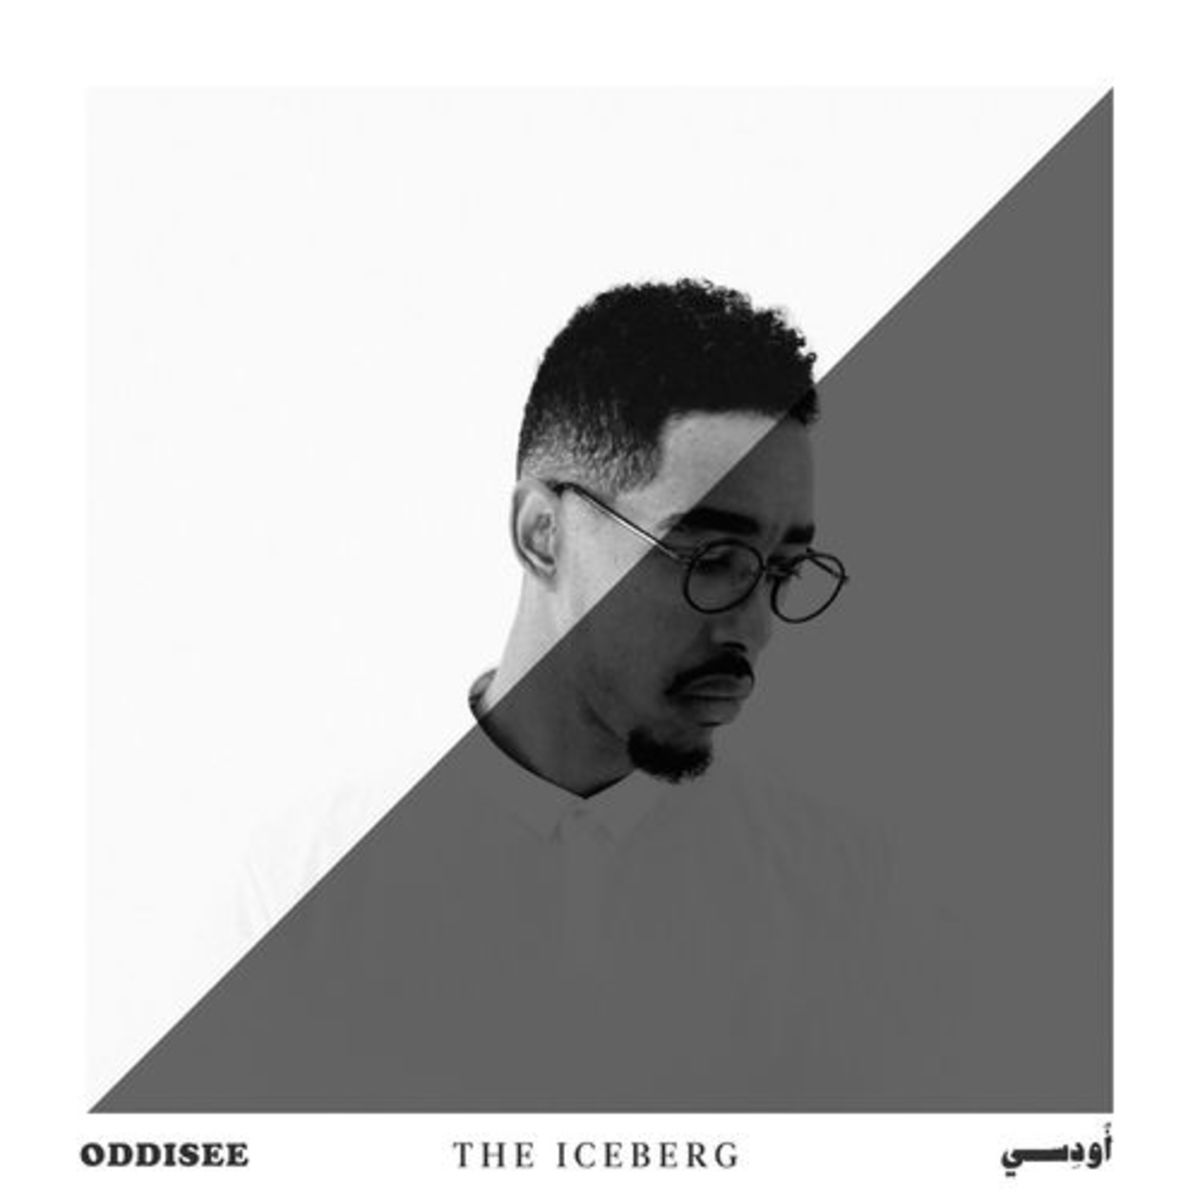 oddisee-the-iceberg.jpg